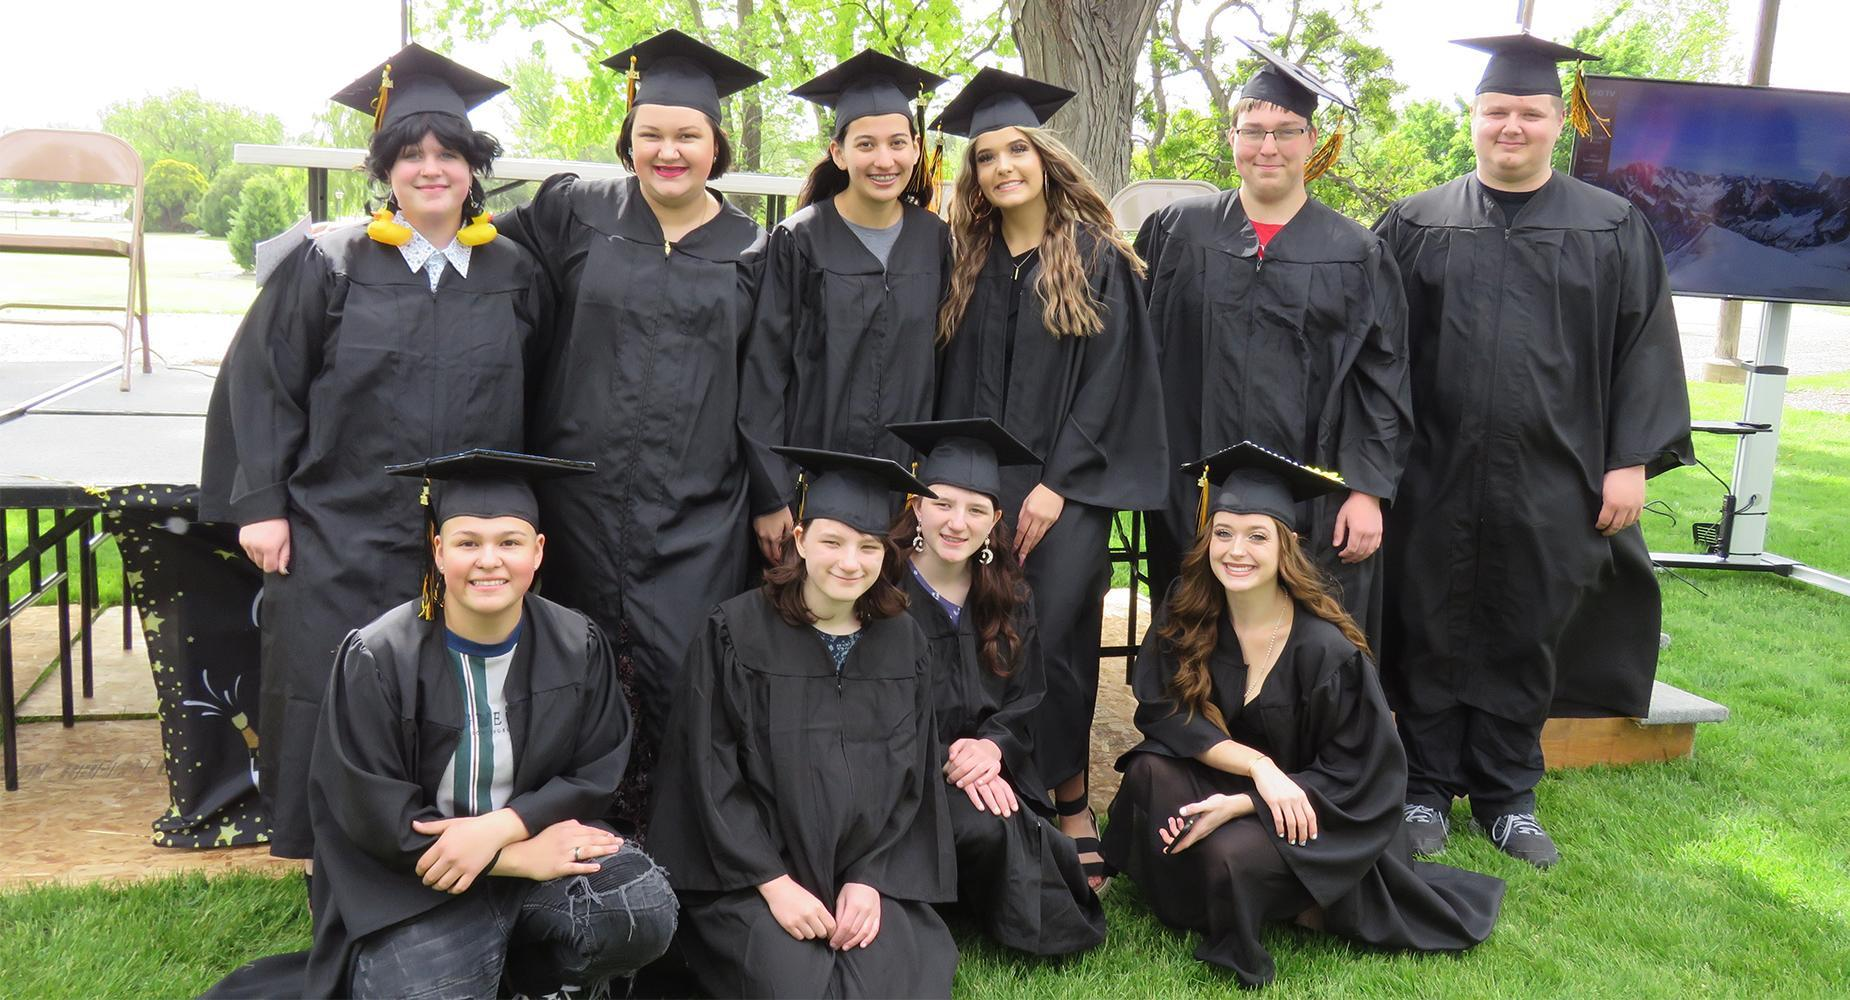 TVLA Graduates pose for a group photo wearing caps and gowns.